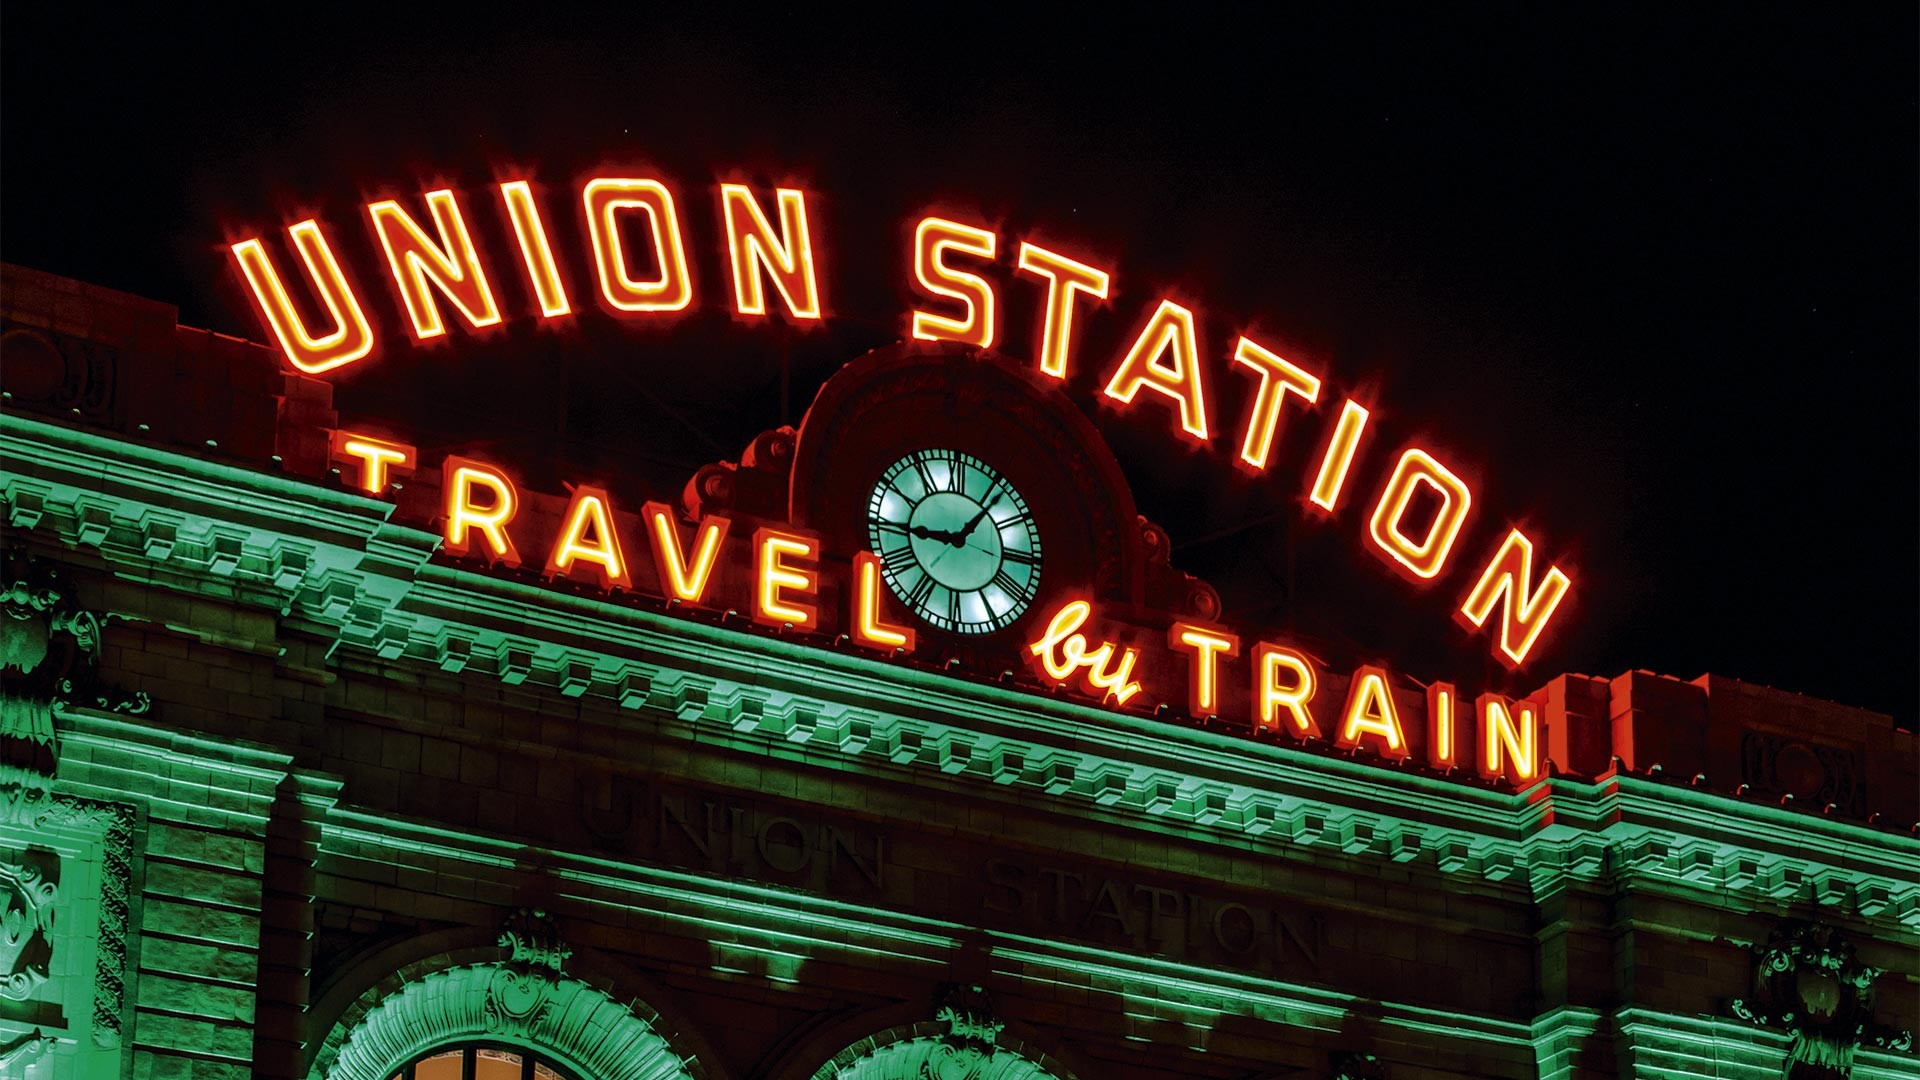 Union Station in downtown Denver